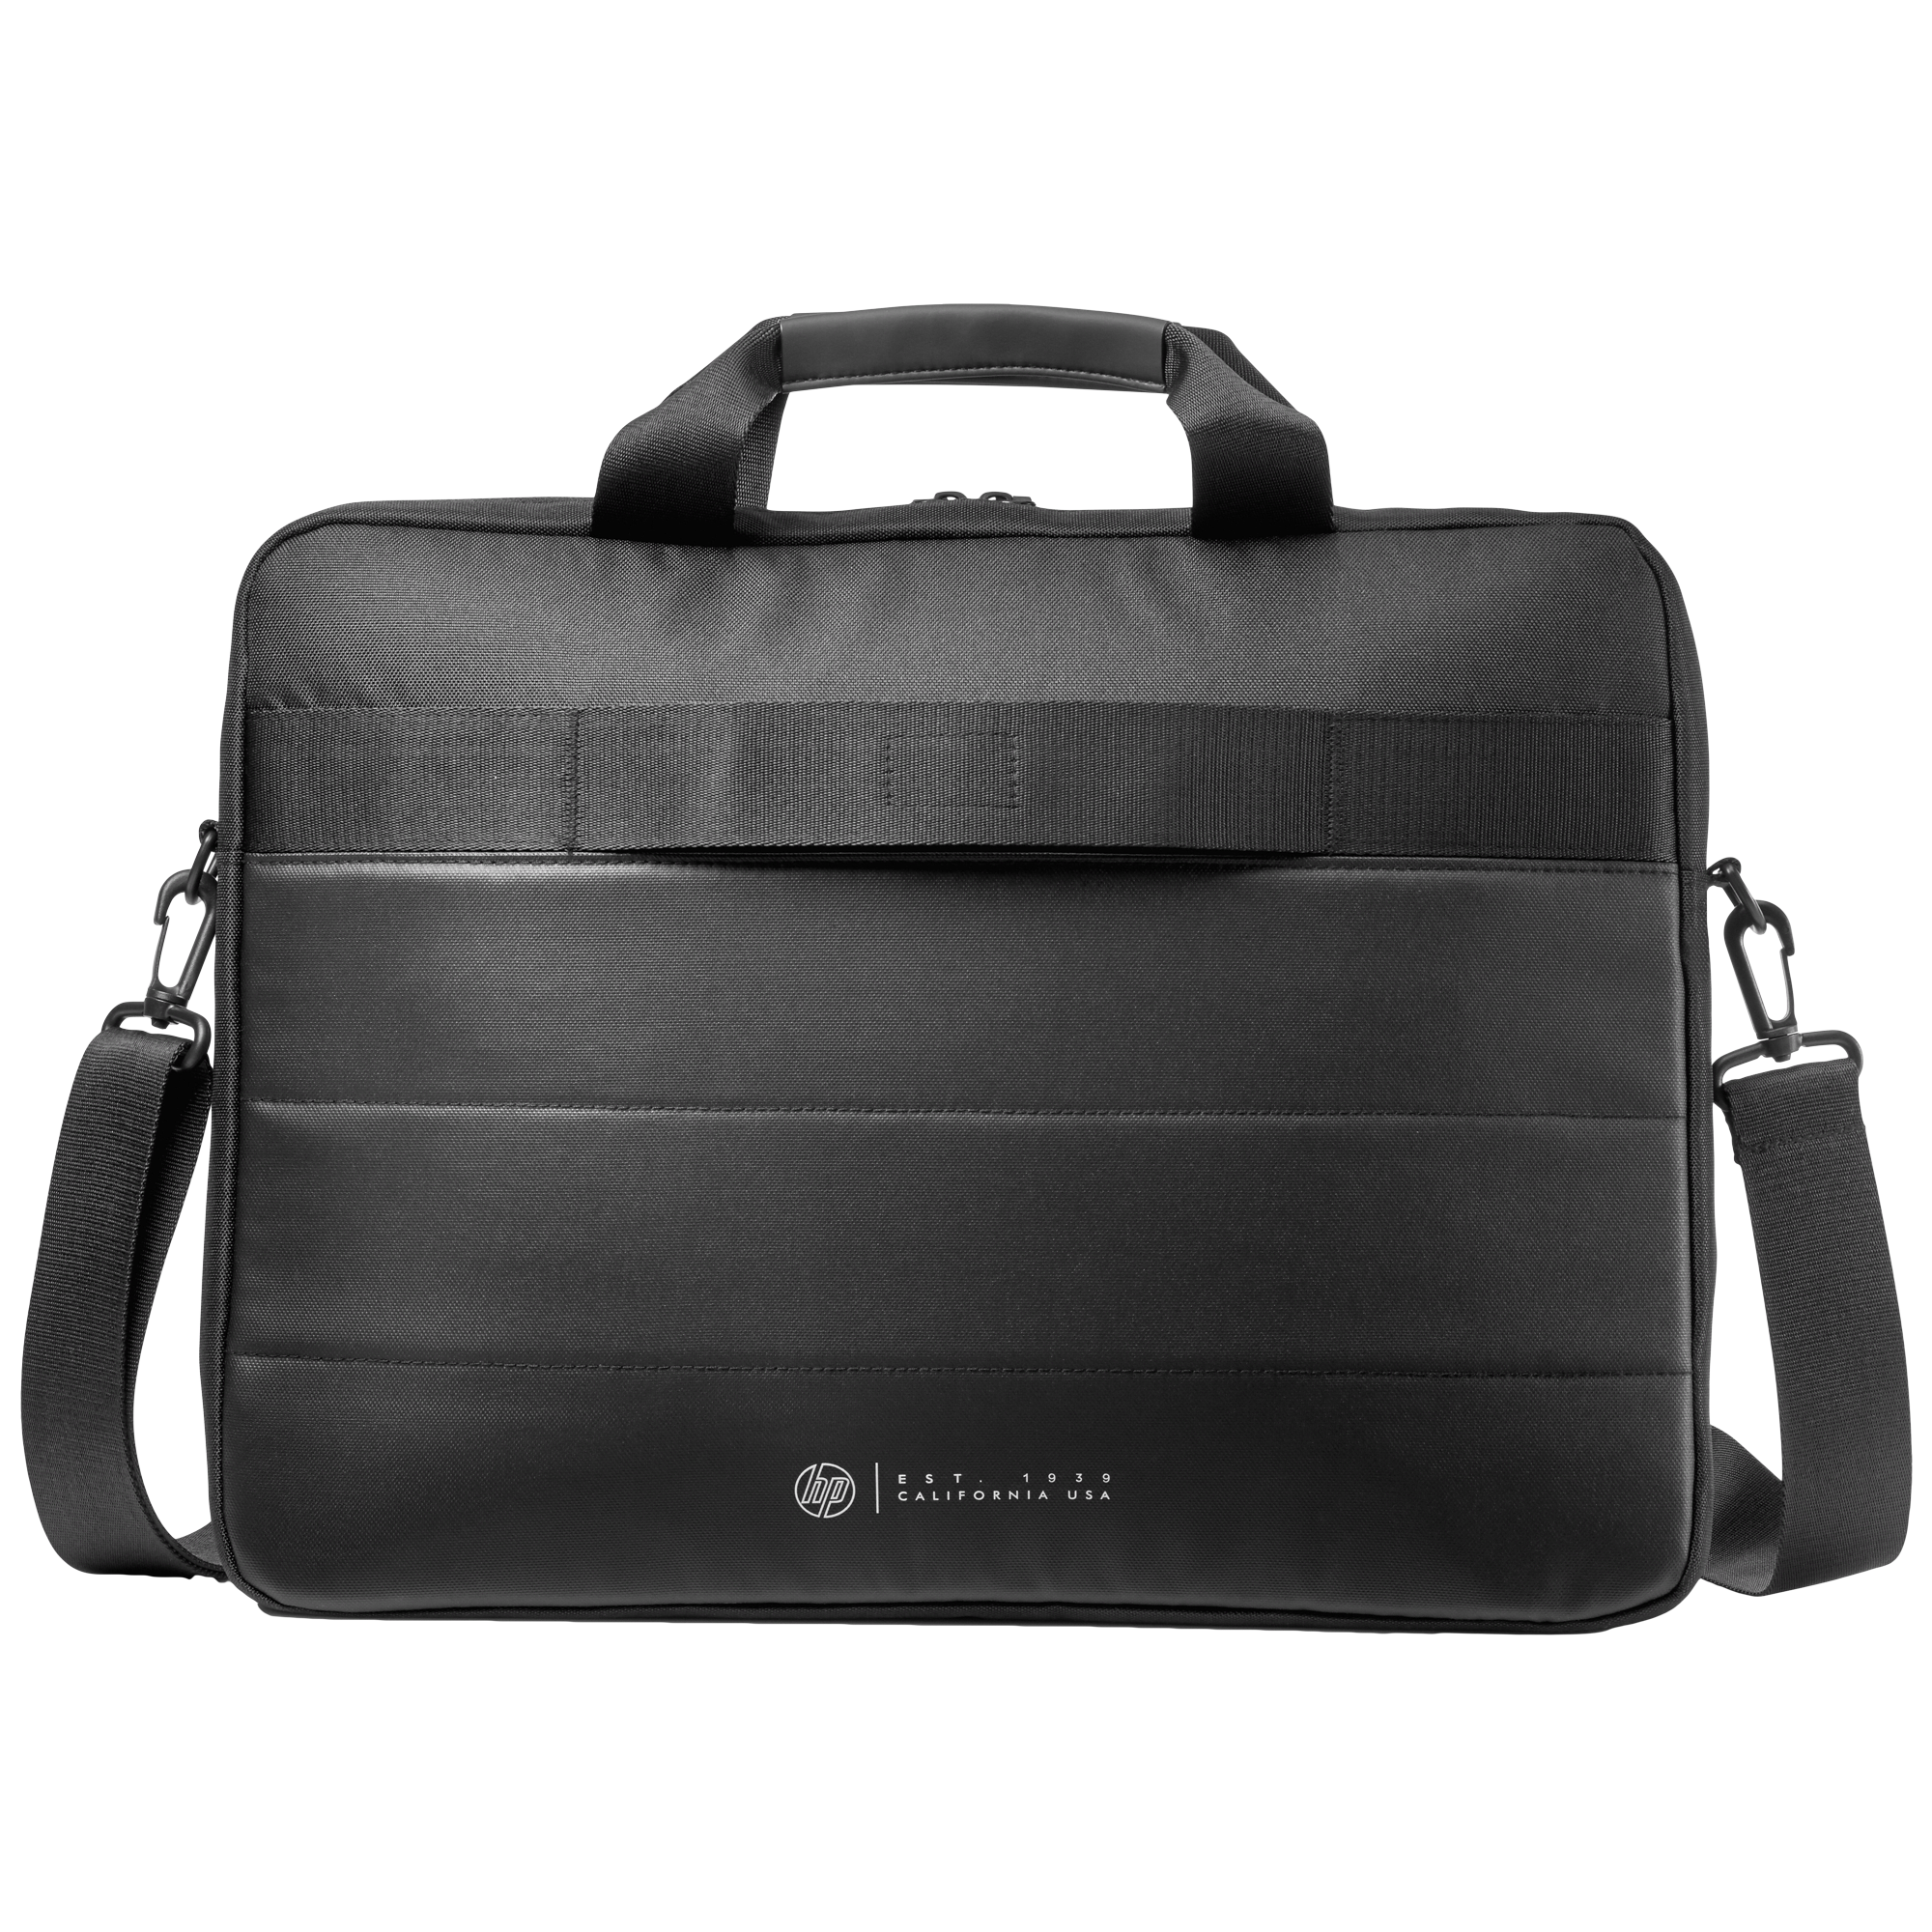 HP Classic 18 Litres Nylon Briefcase for 15.6 Inch Laptop (Water Resistant, 1FK07AA, Black)